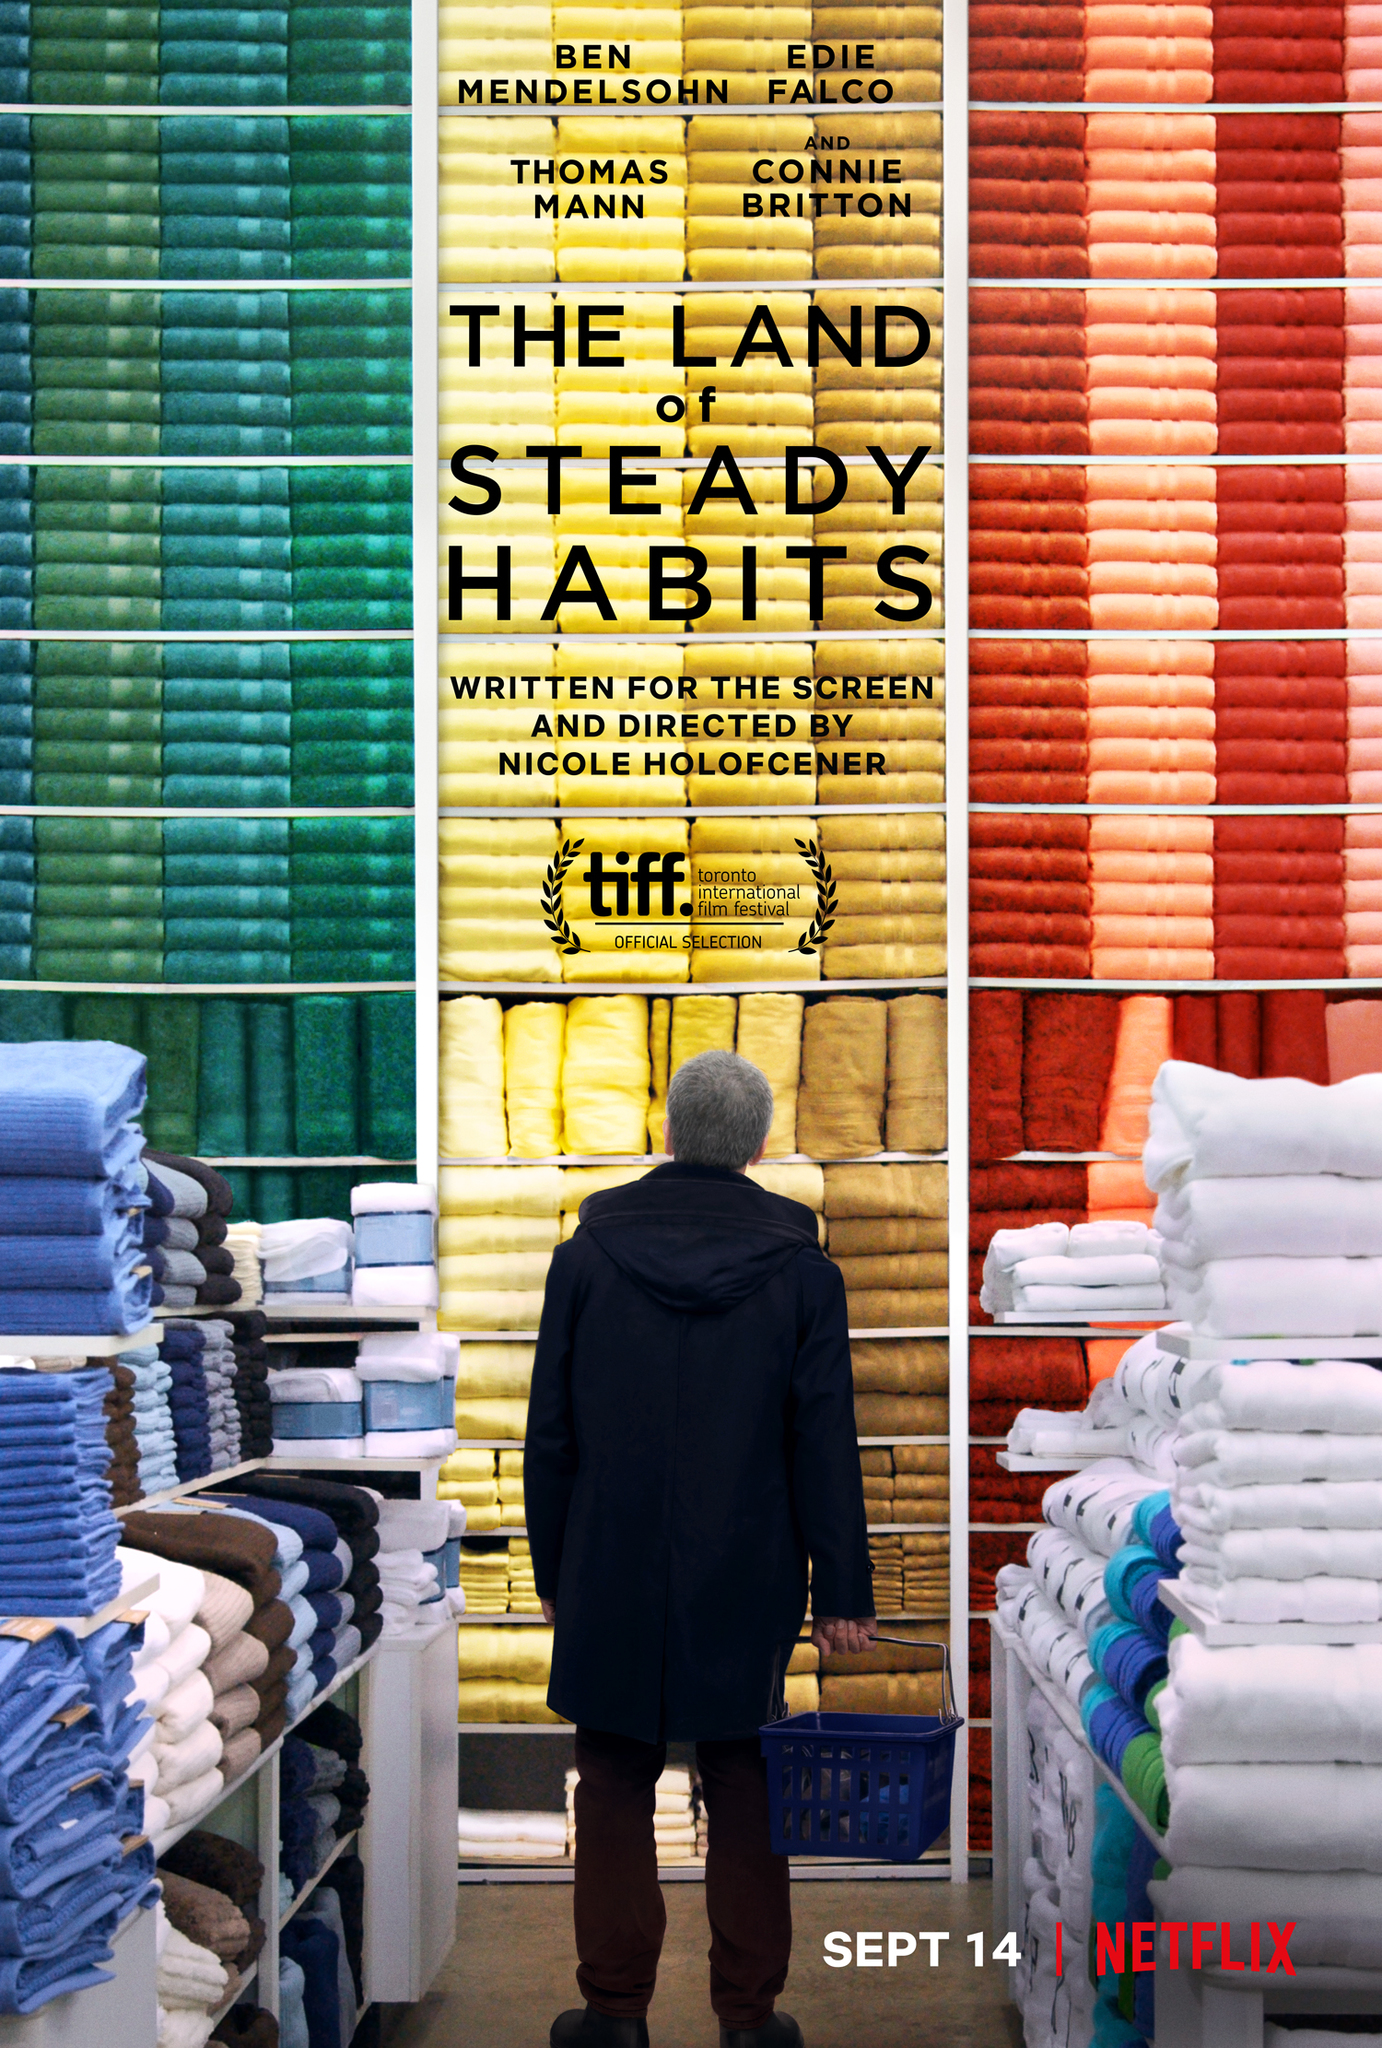 Netflixs The Land of Steady Habits a compelling drama of mid-life crisis